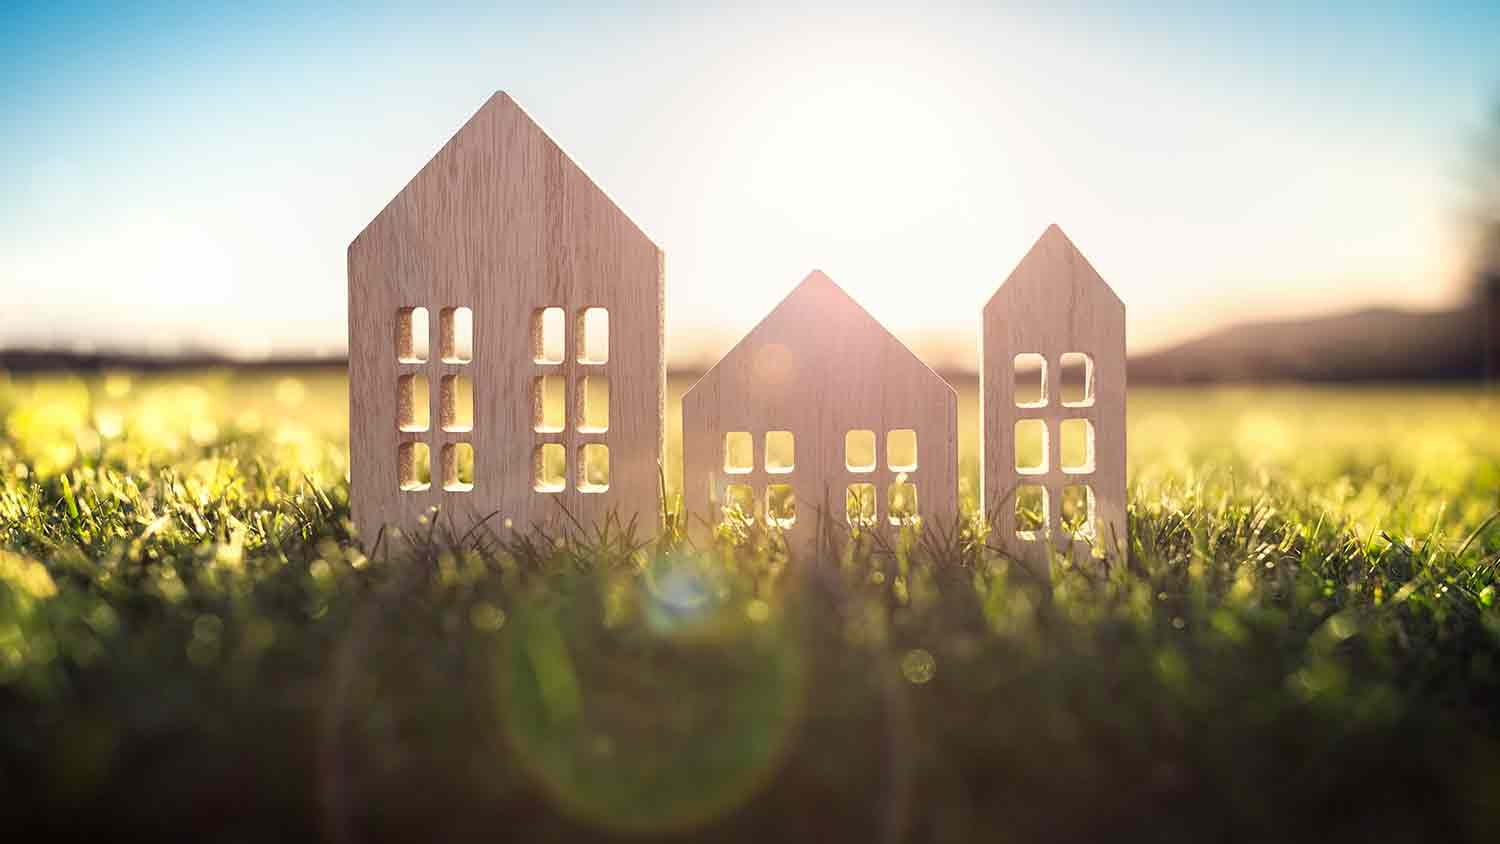 Three small parts of a wooden house lines up, the sun is shining in the background